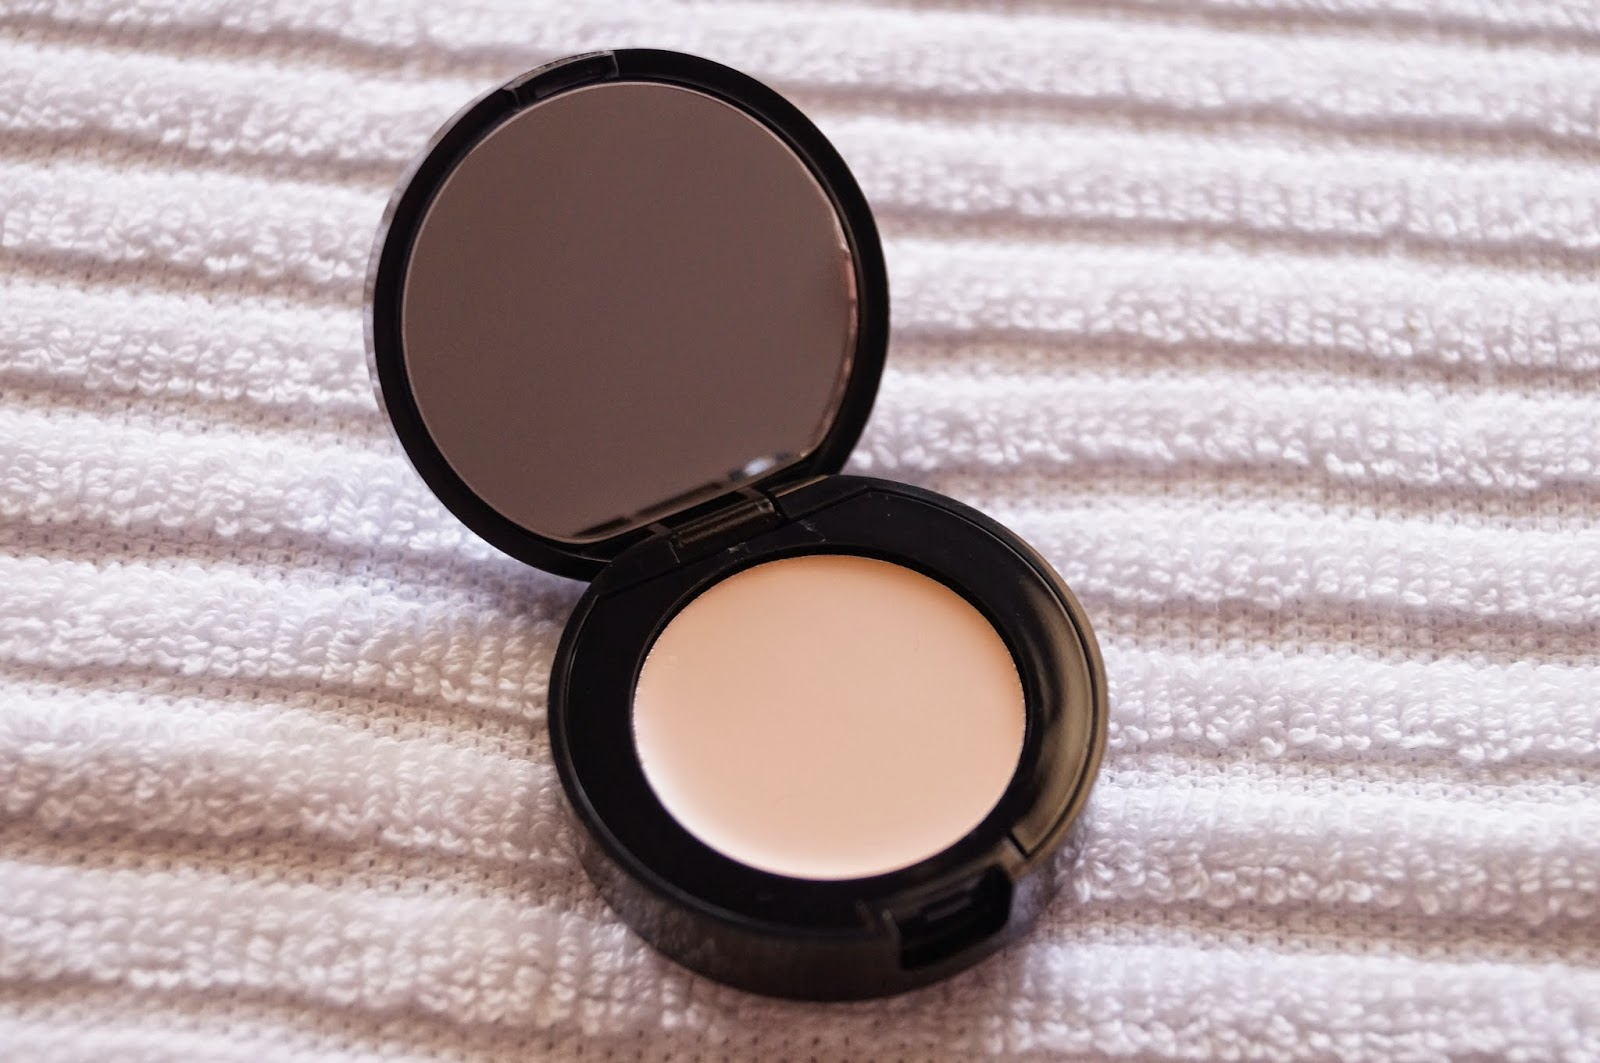 Bobbi Brown Corrector in Porcelain Bisque